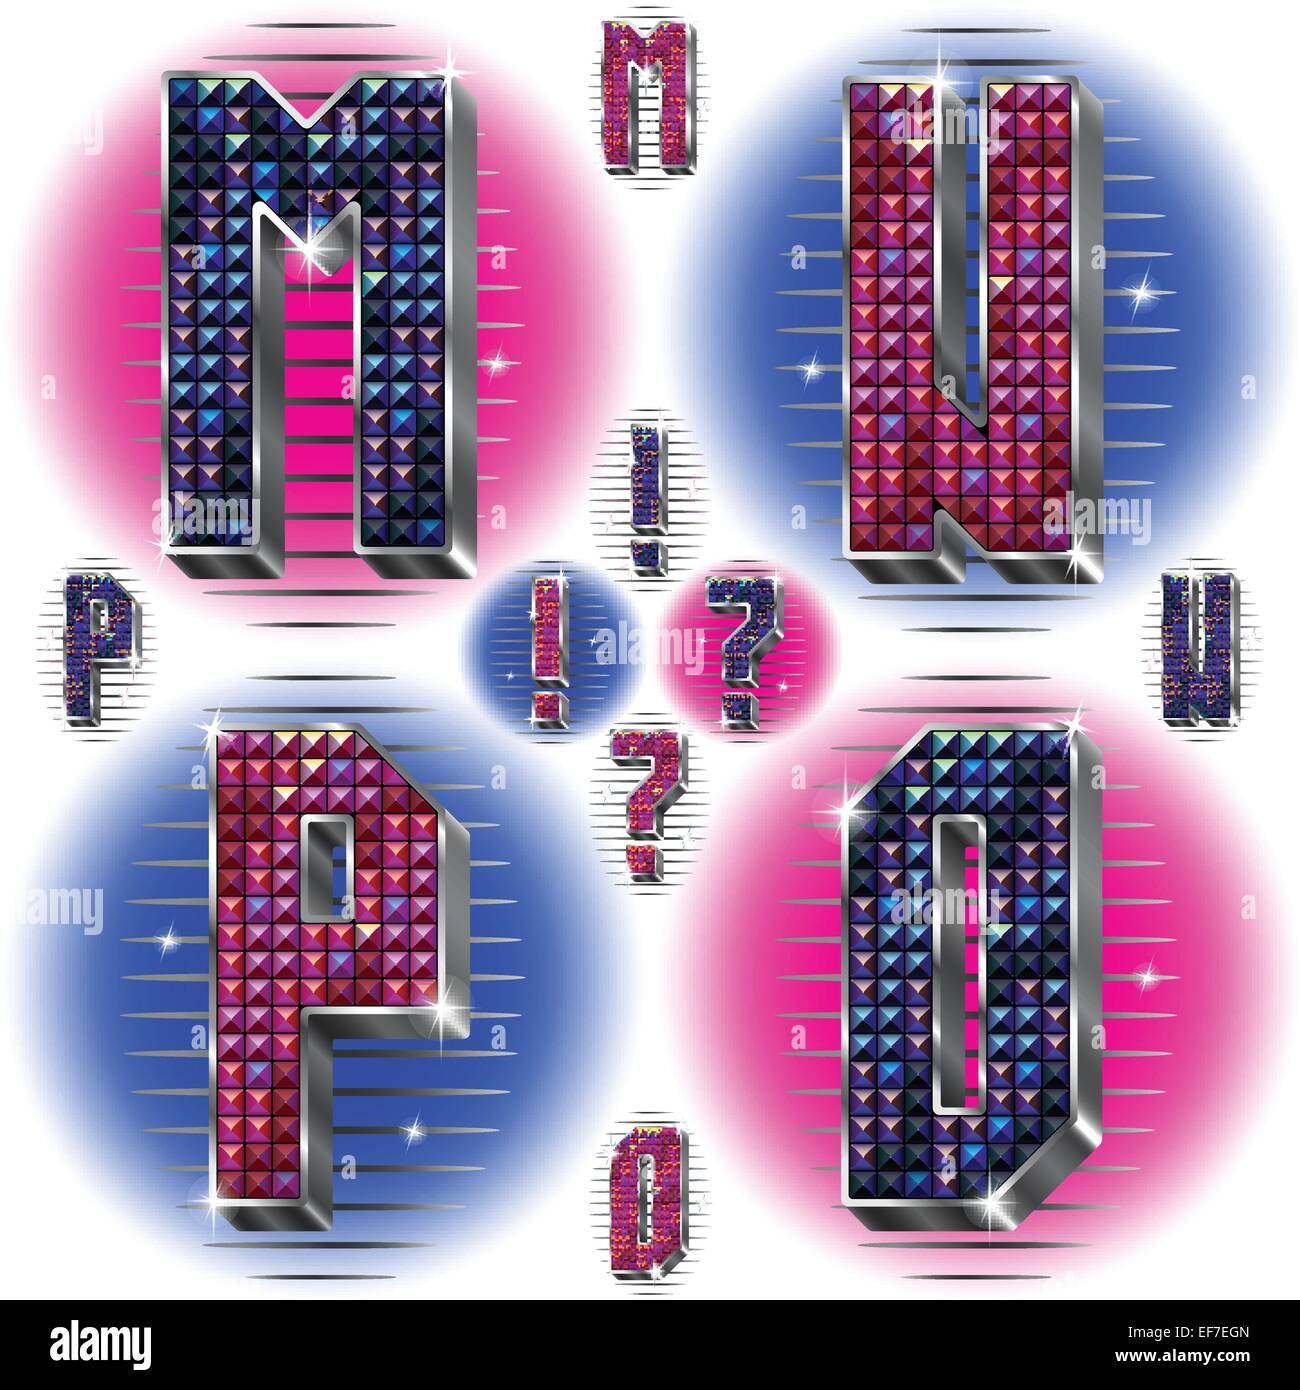 M Typography Font Letter Type Stock Vector Images - Alamy